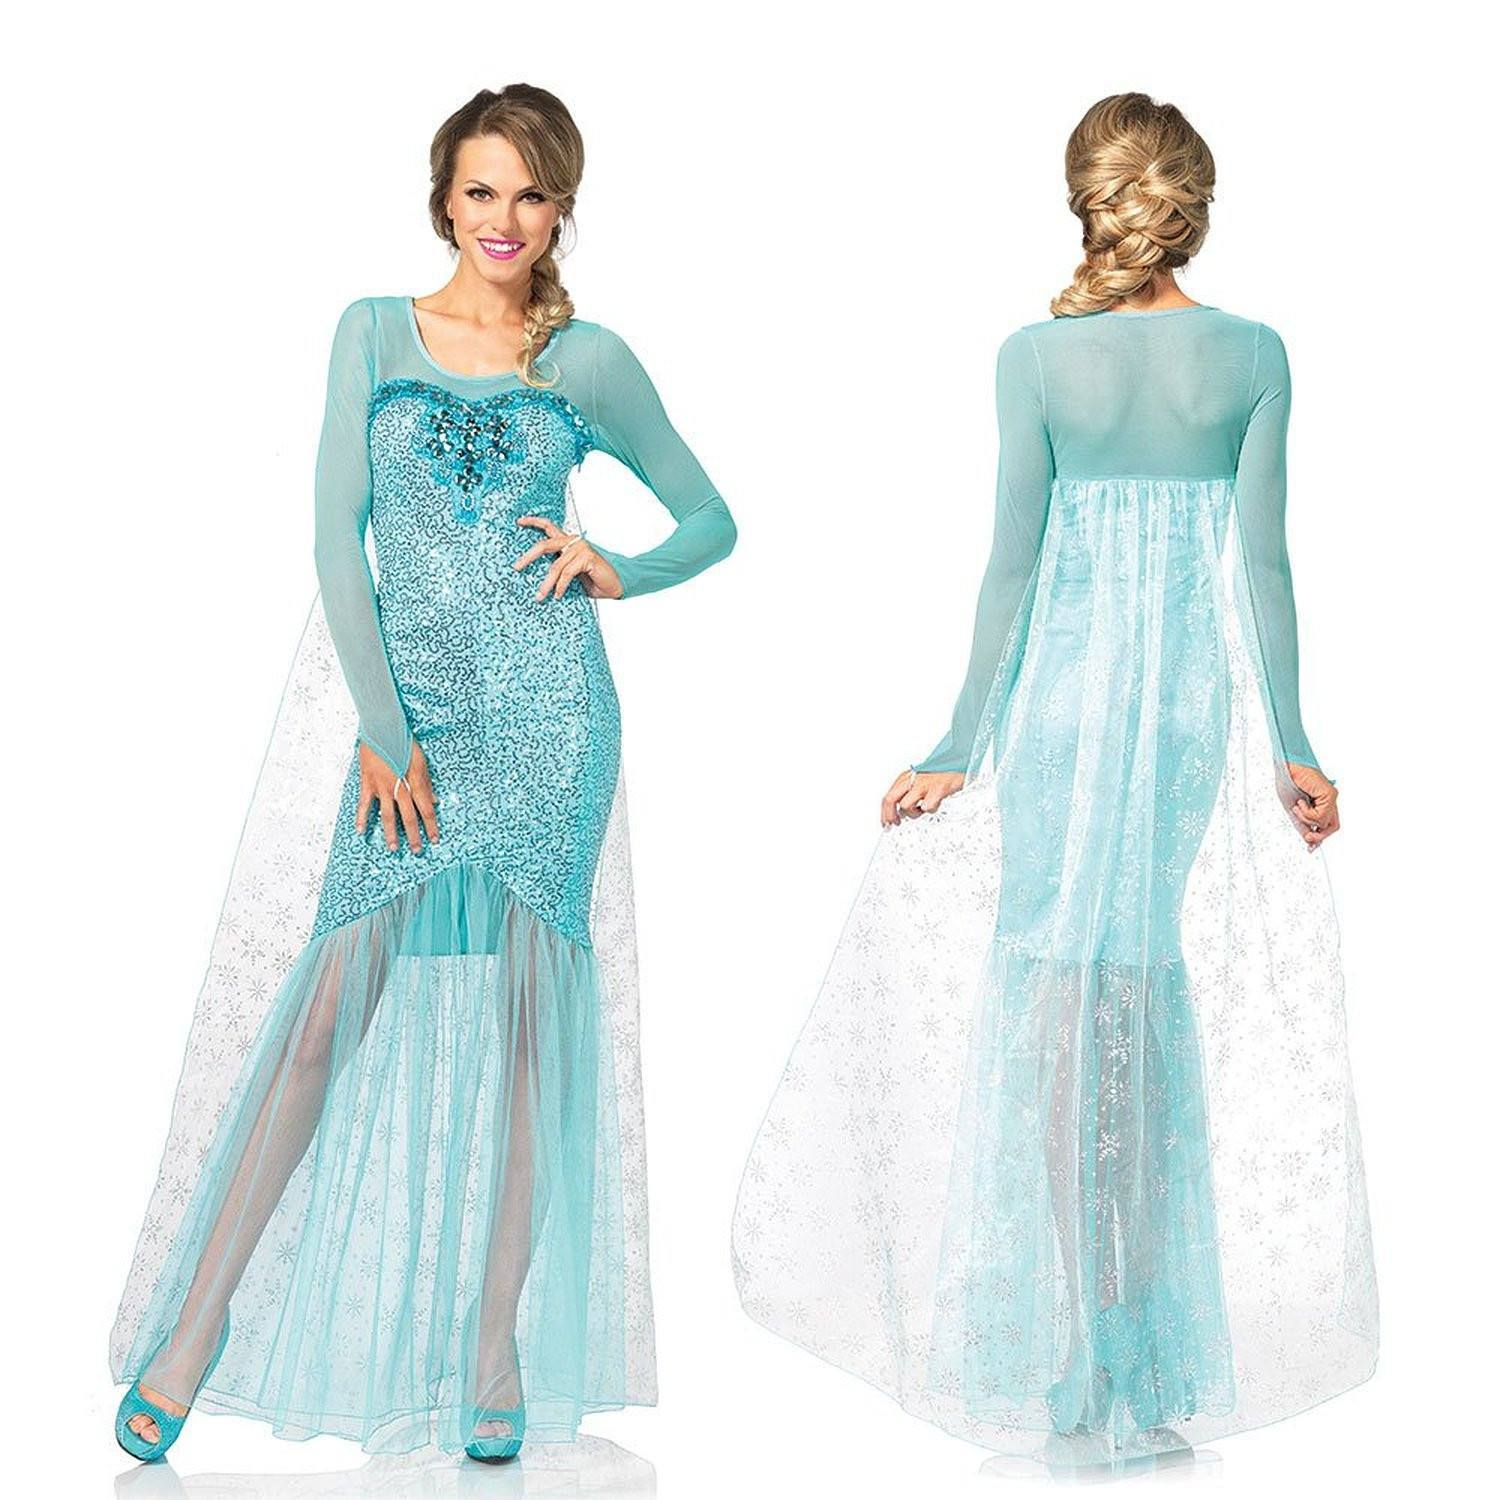 Fairy Tale Snow Queen Adult Hire Costume | Costumes and Fancy Dress ...